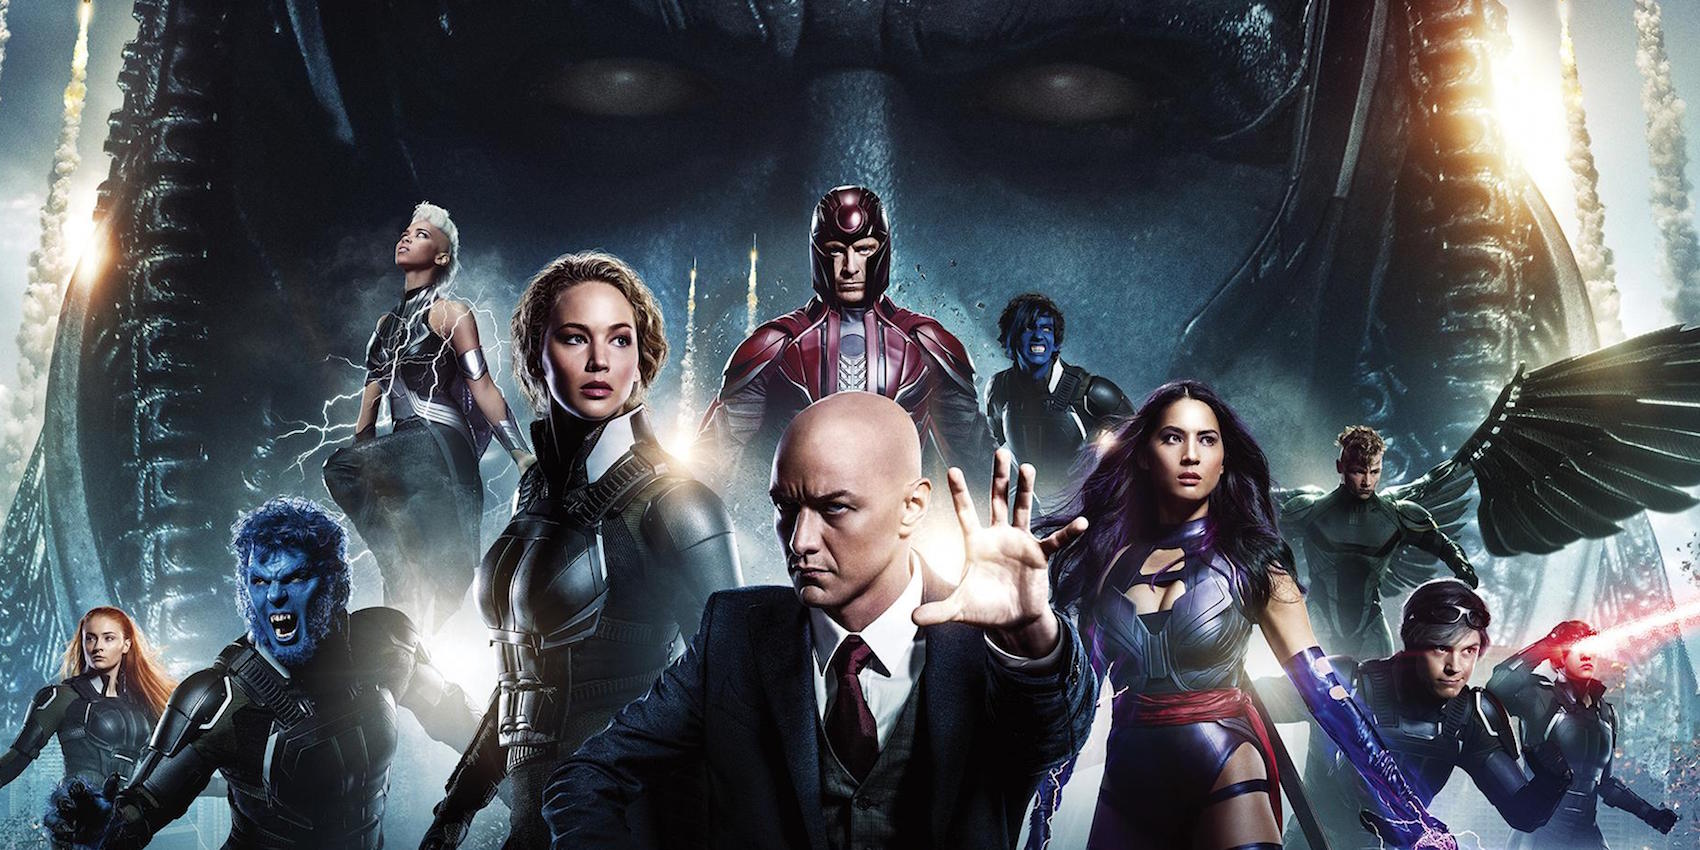 The Cast of X-Men: Apocalypse (Review)